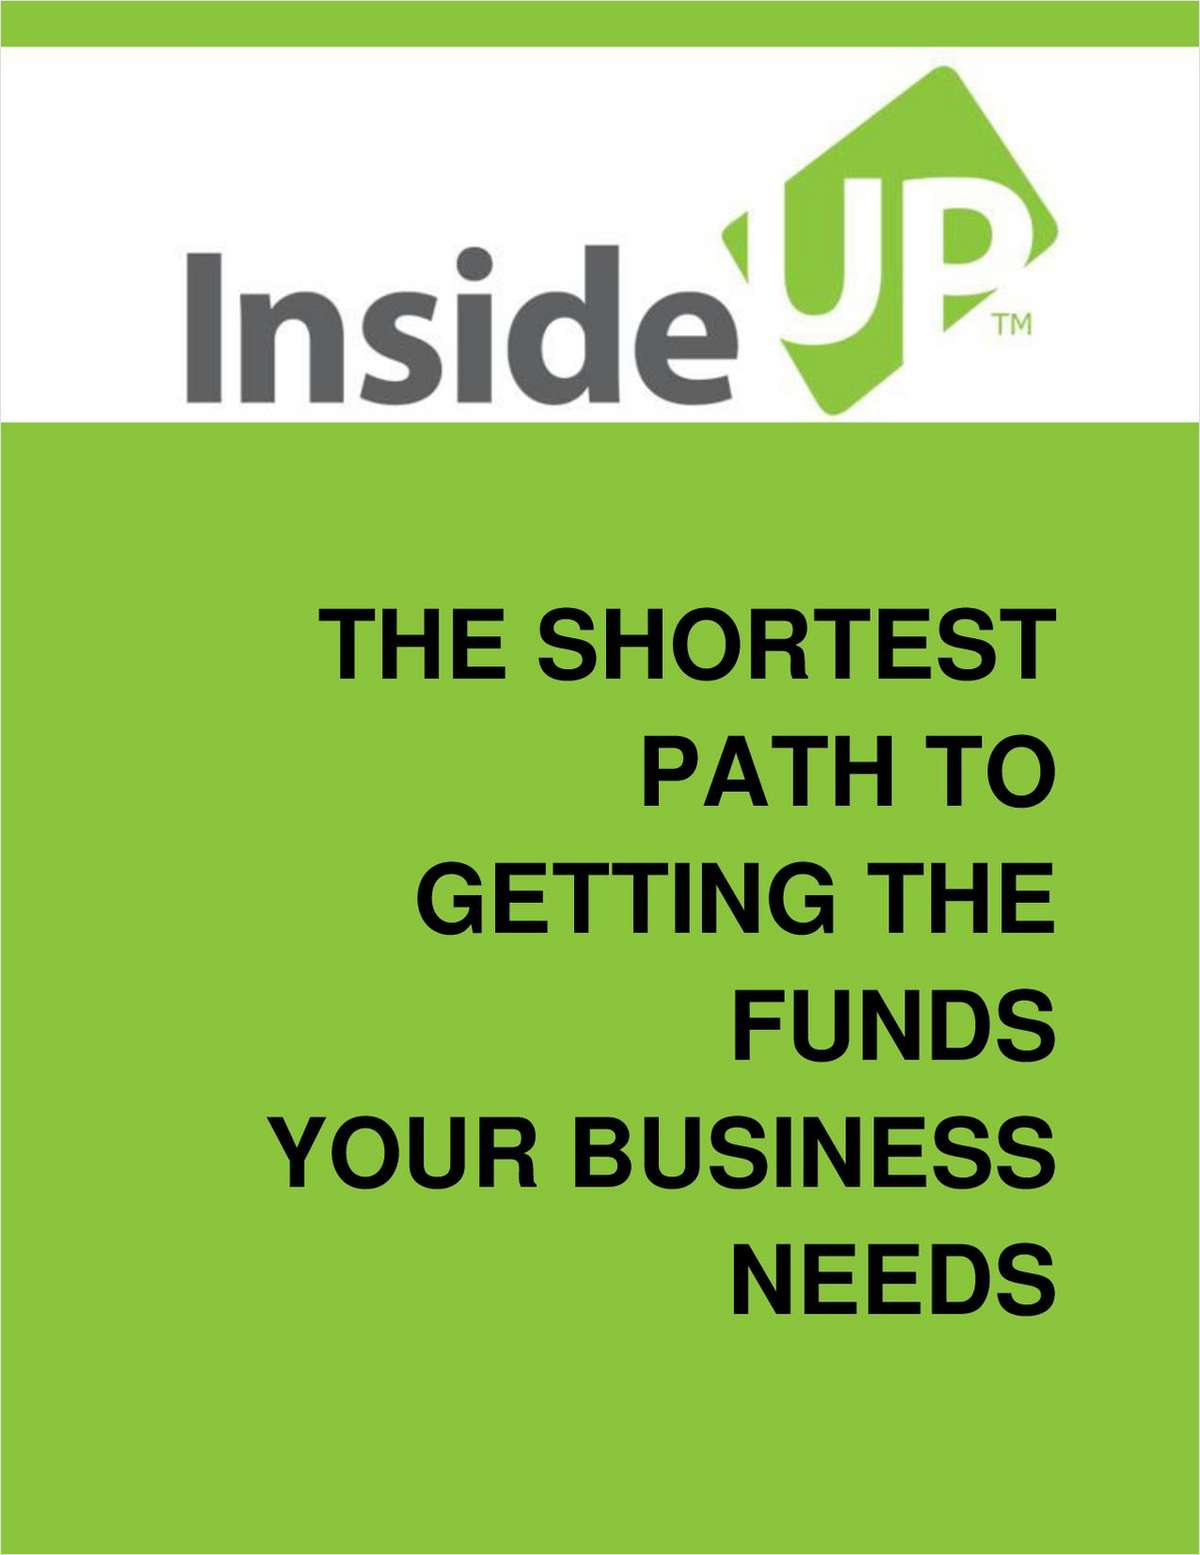 The Shortest Path to Getting the Funds Your Business Needs